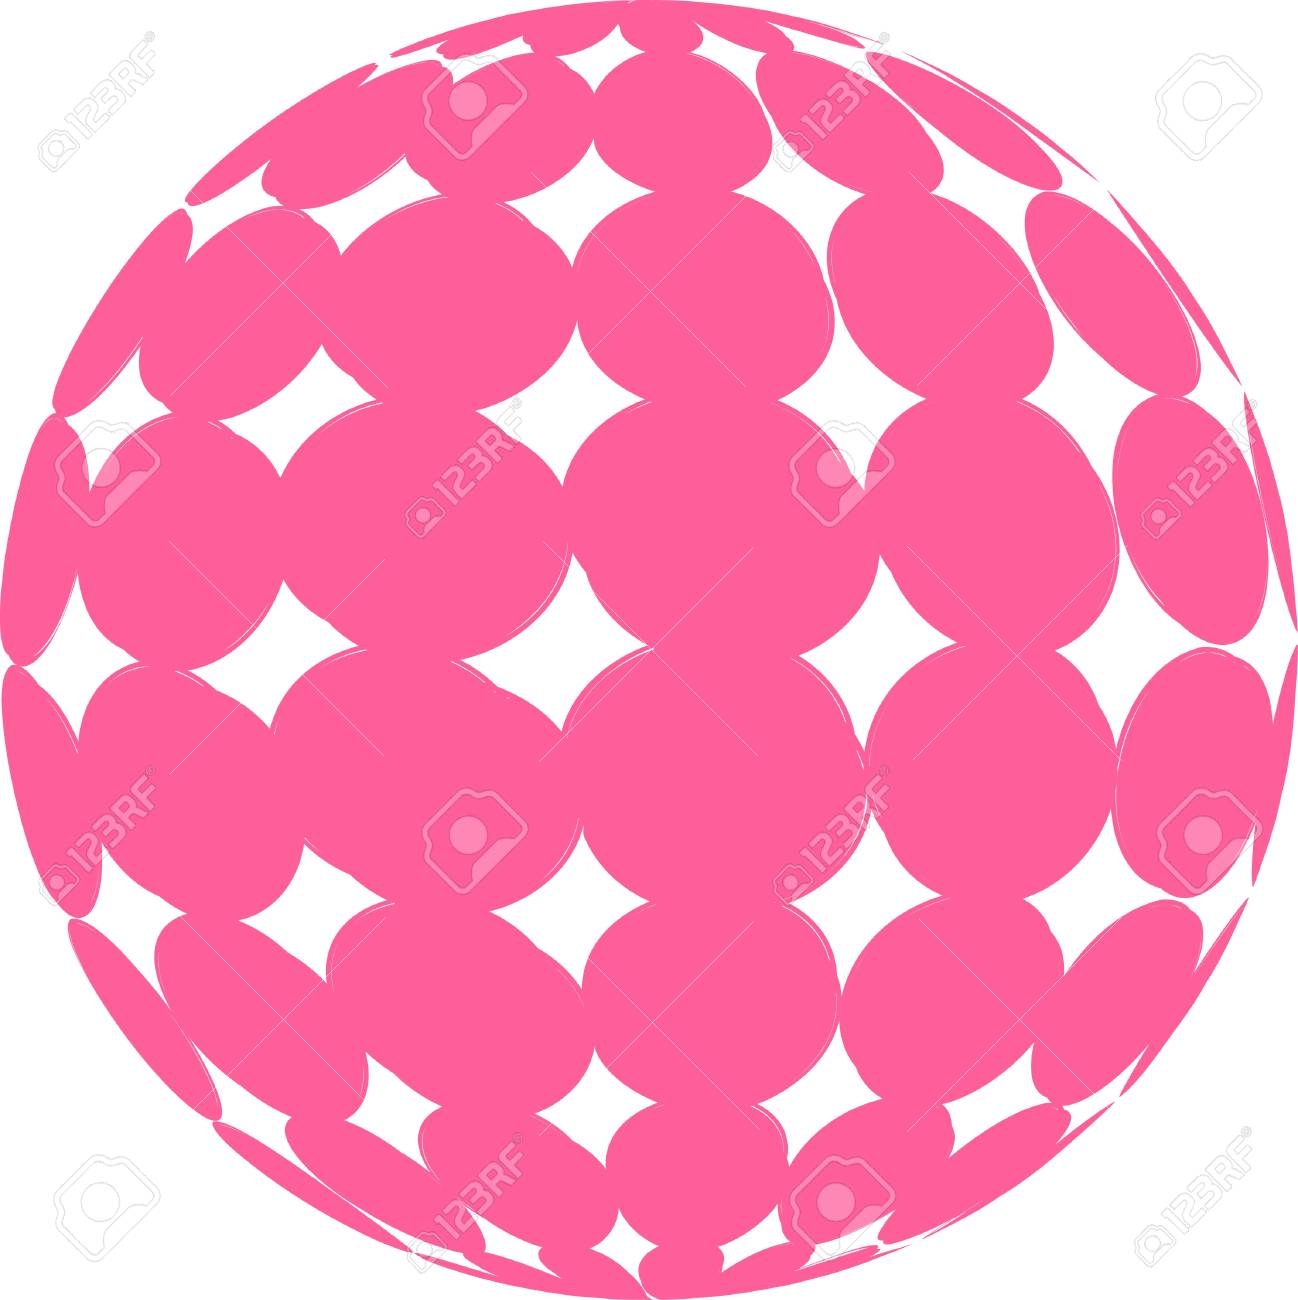 Pink Sphere Illustration Stock Vector - 11512458